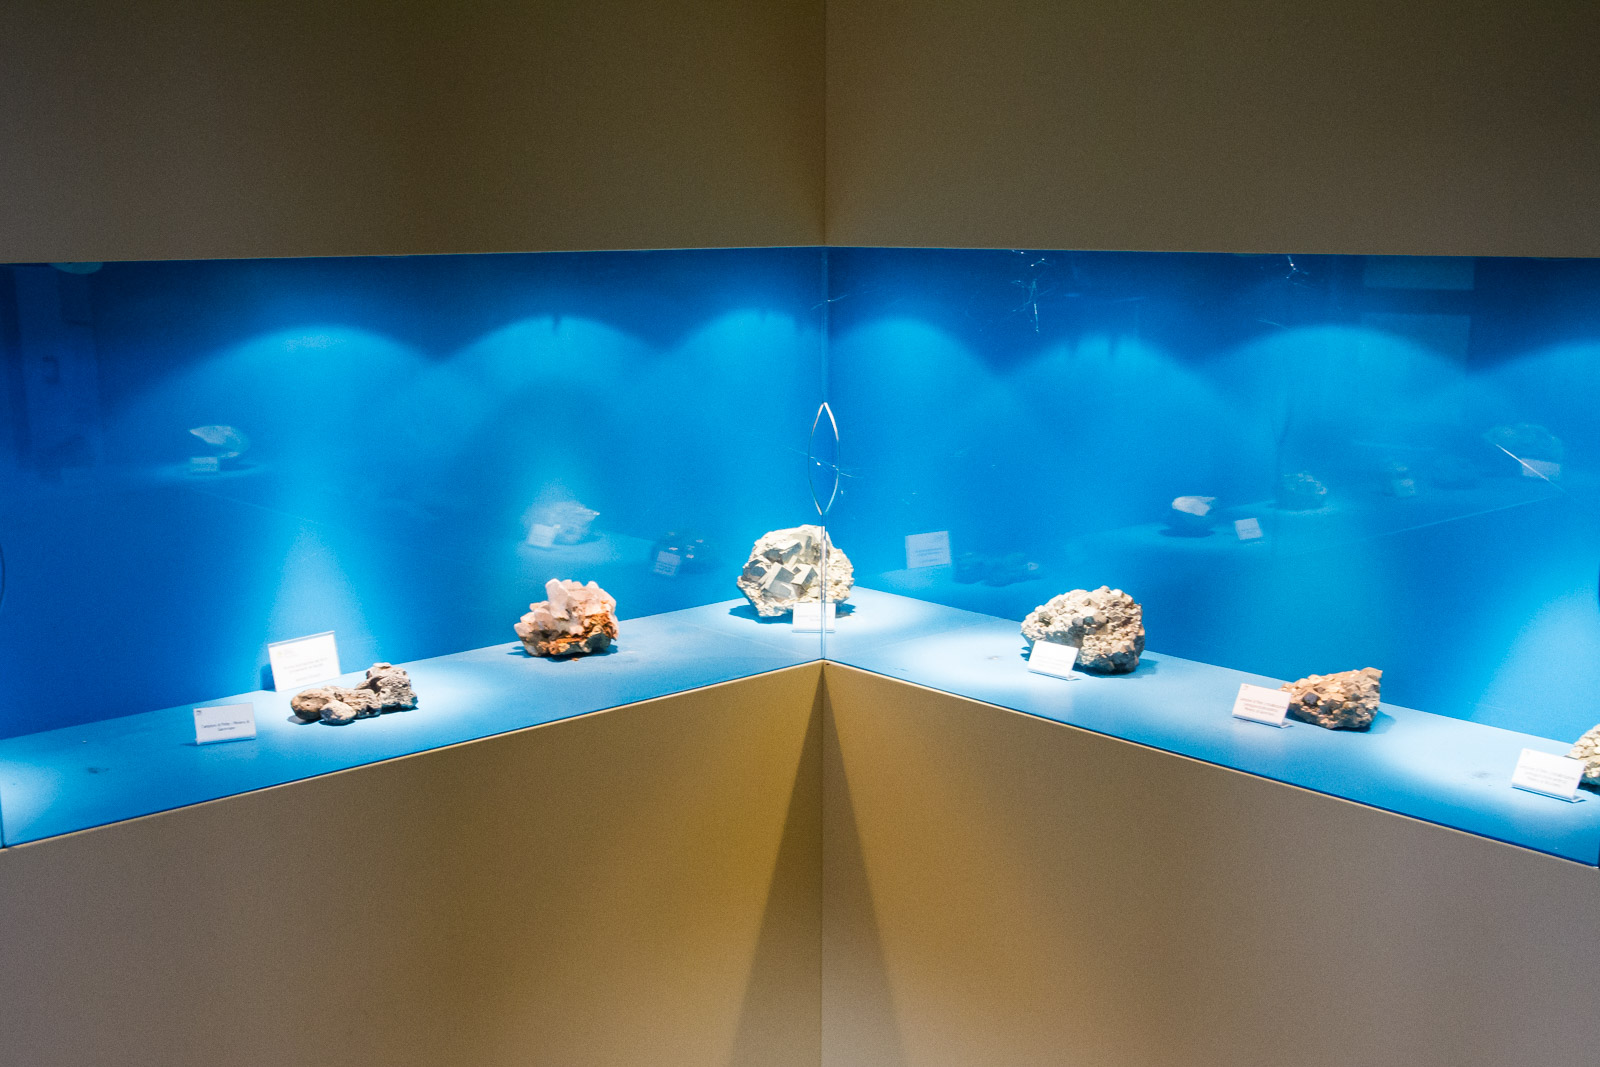 The museum contains a mineral collection that is on display and are examples of the minerals found undergraound in the area.